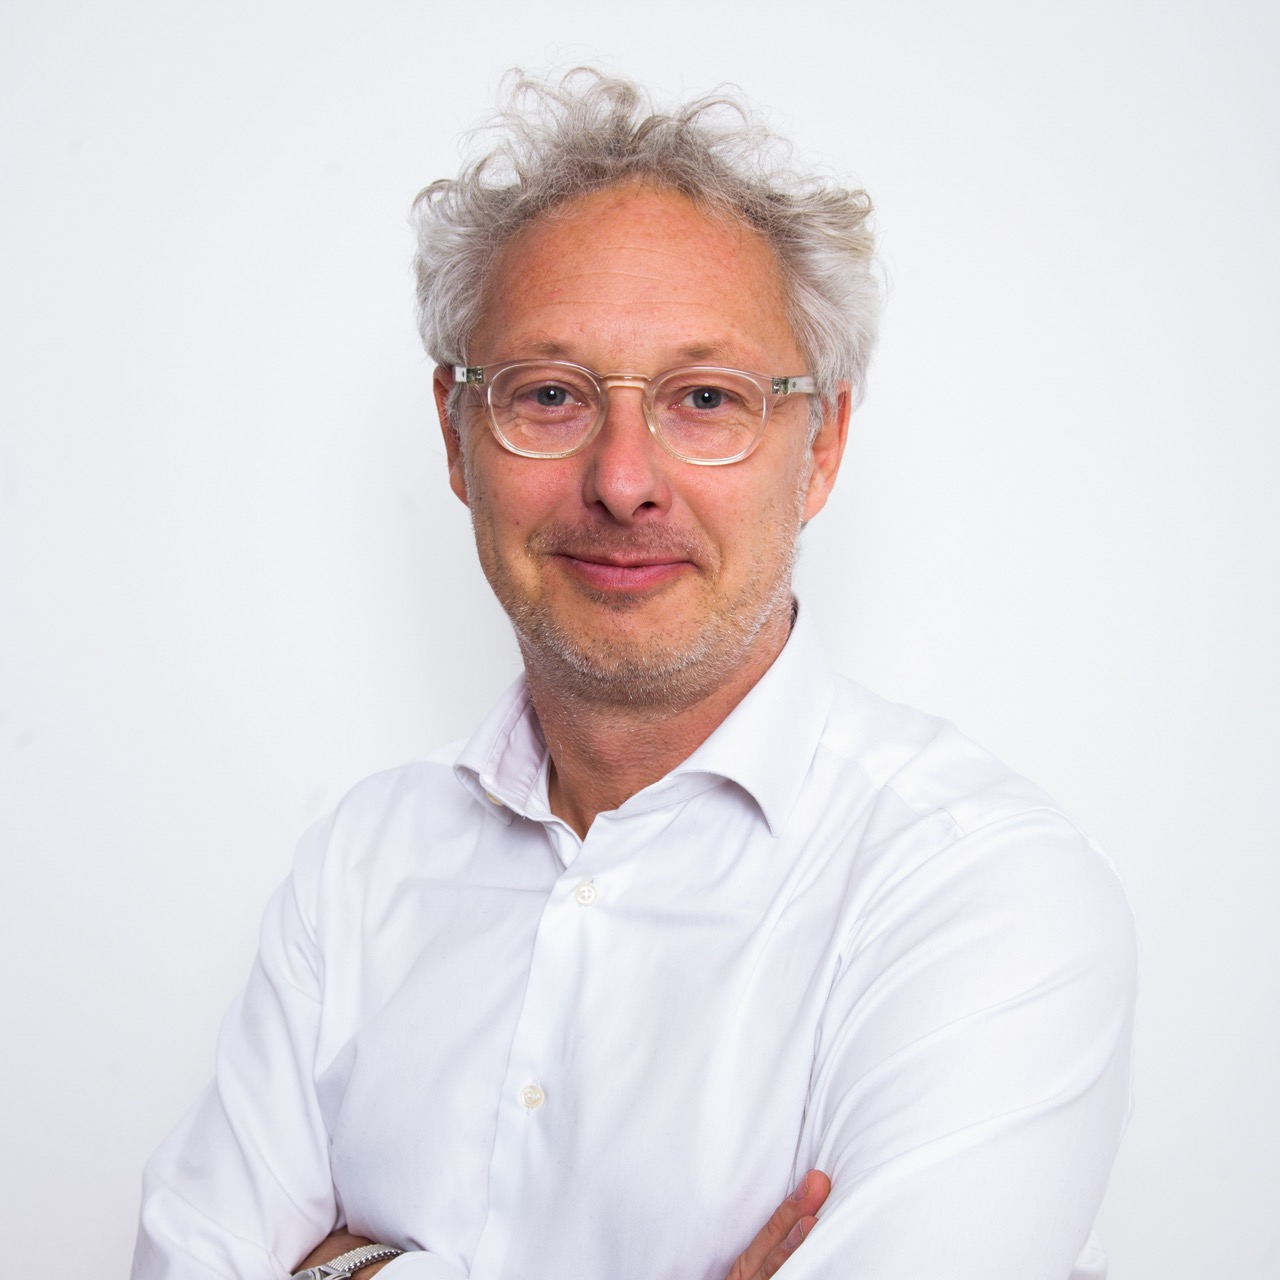 Willem Hendrickx, Ceo e co-fondatore di GIG Technology